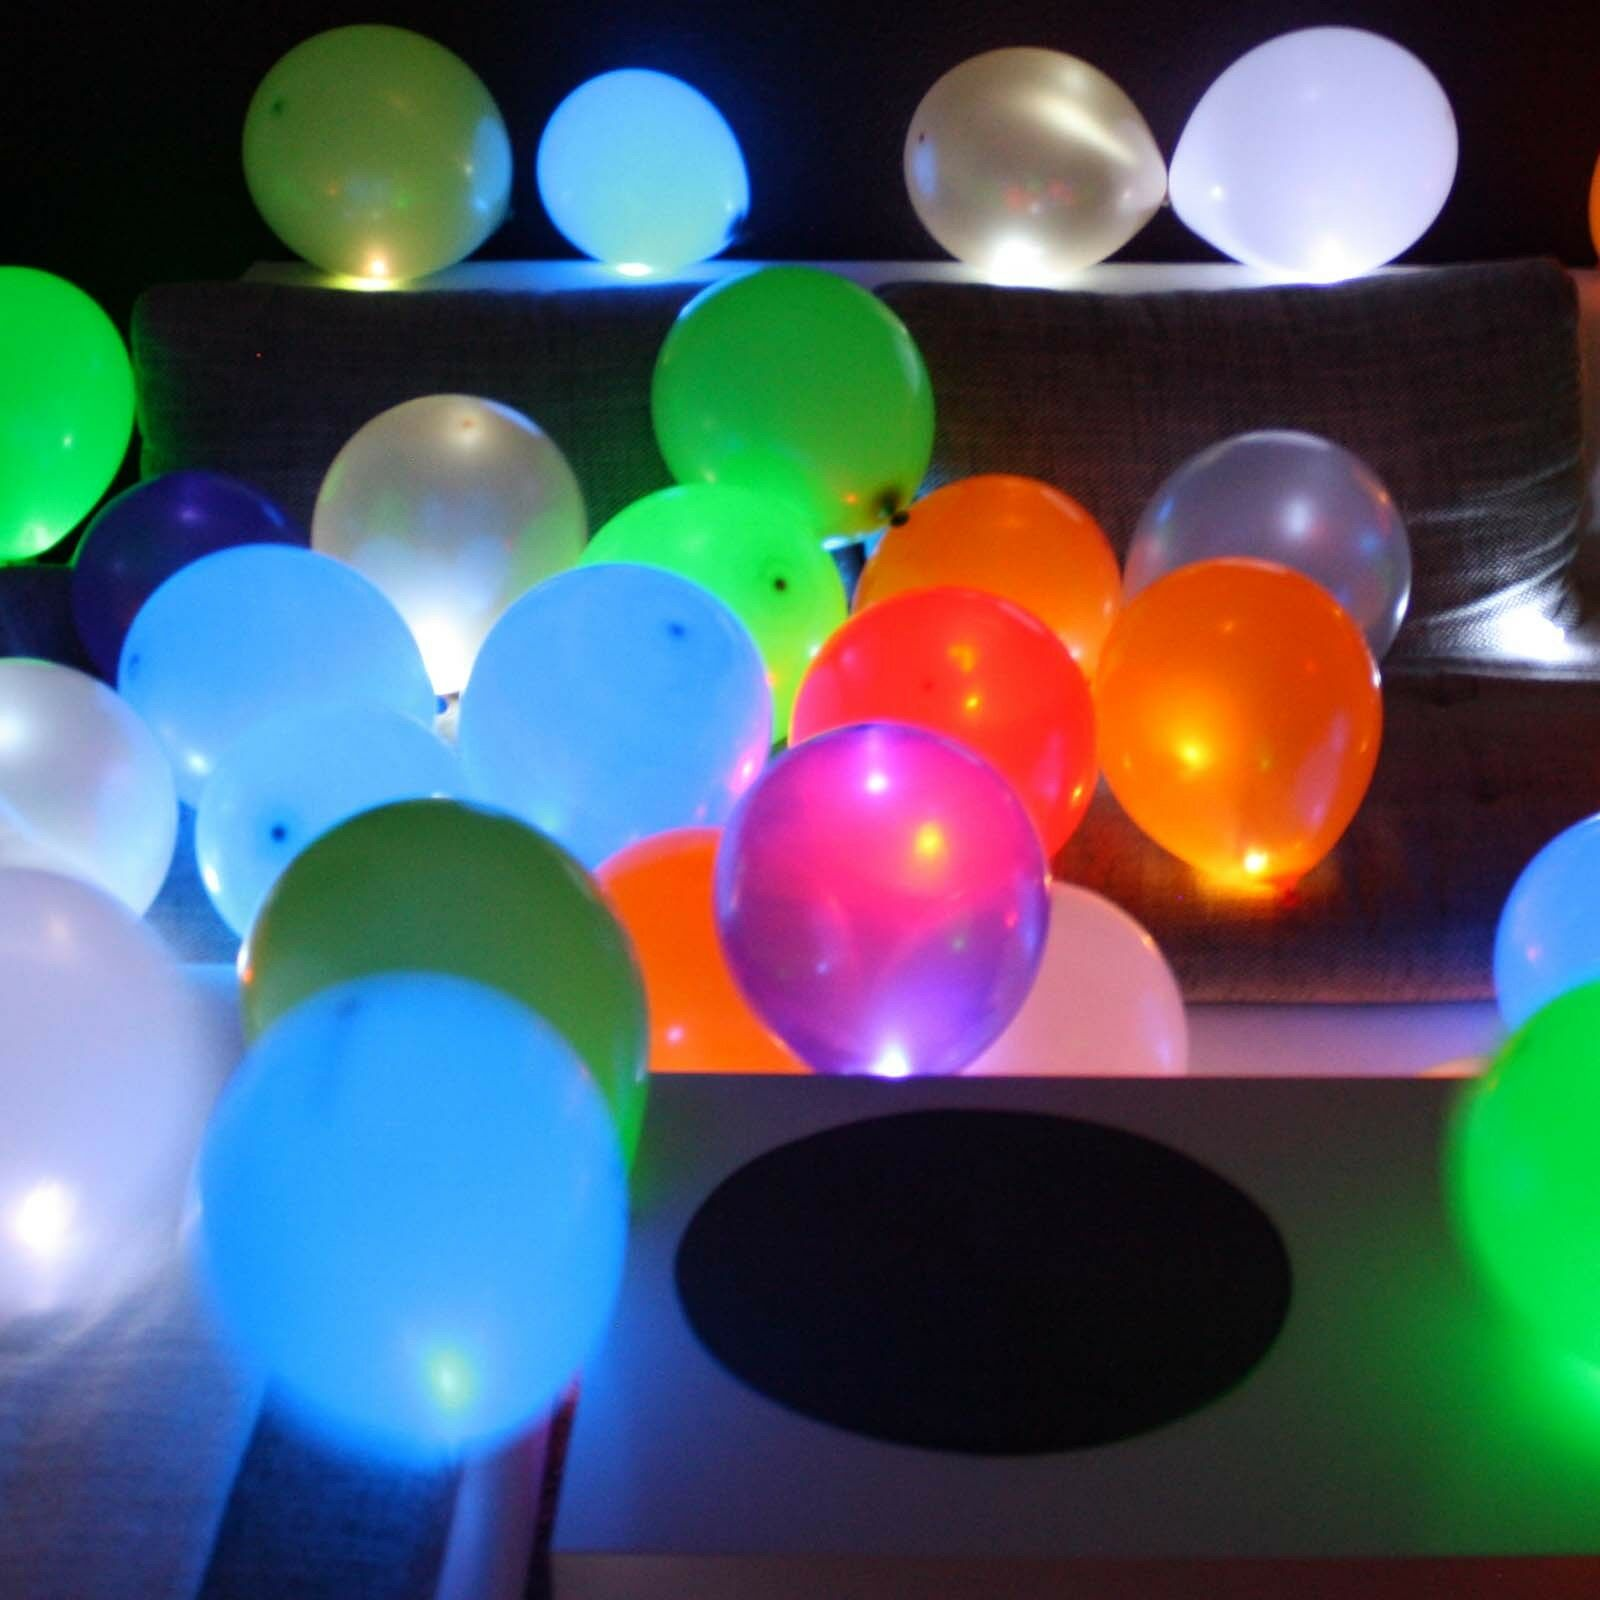 $_57 Luxus Ballon Mit Led Licht Dekorationen